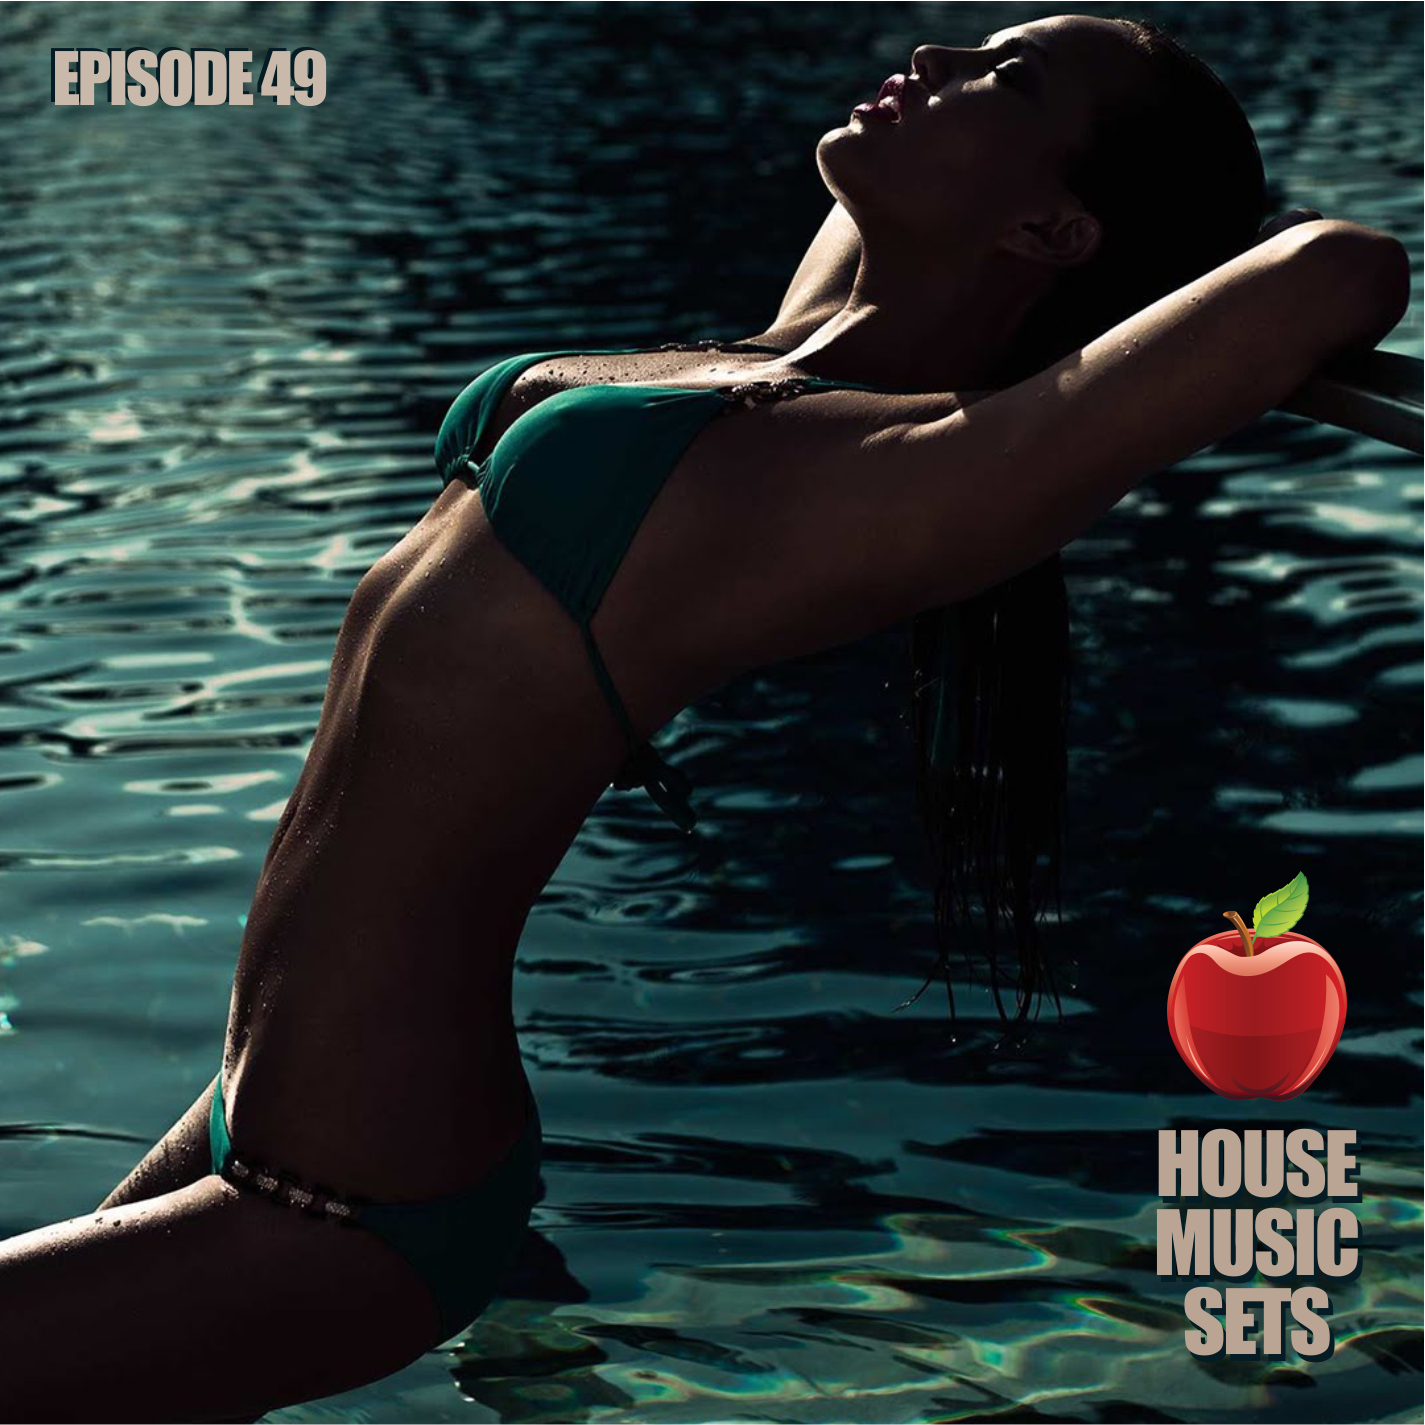 House music sets episode 49 house music sets podcast for House music podcast